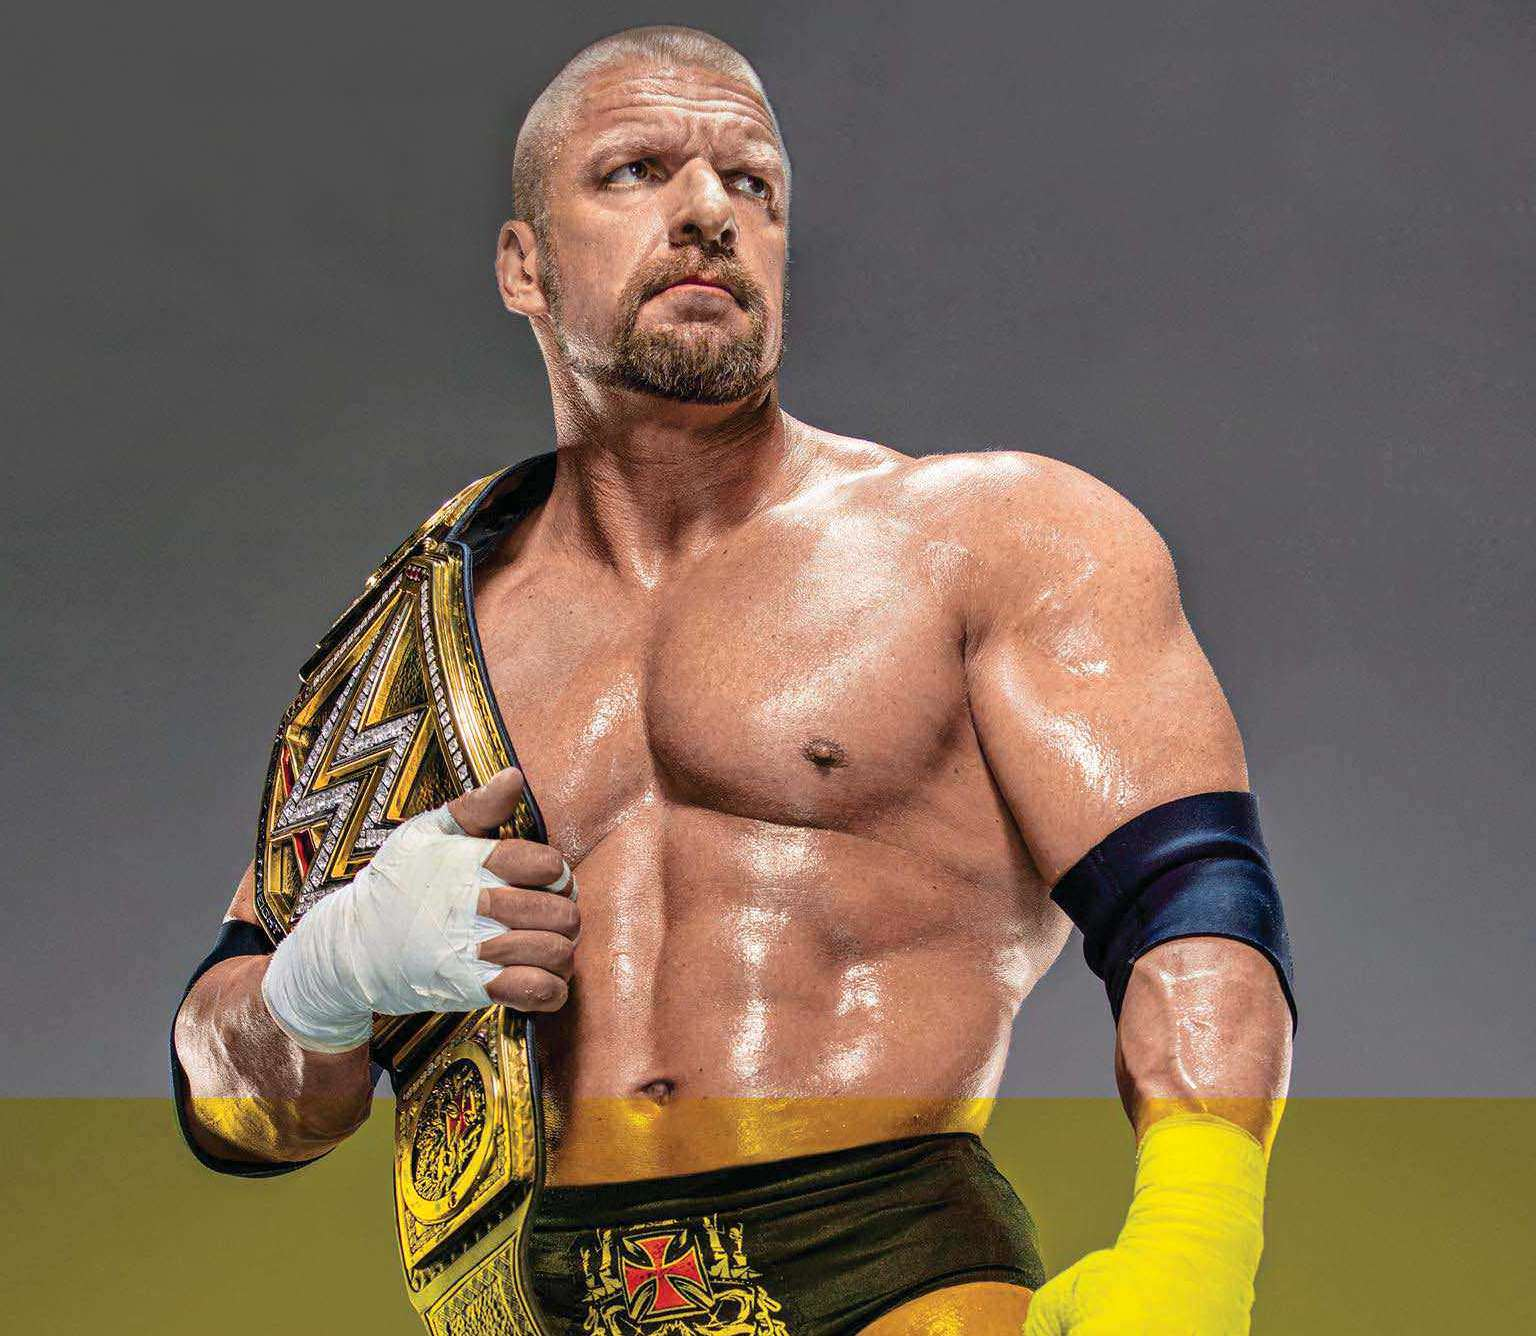 WWE Star Triple H Gets Candid About His Career